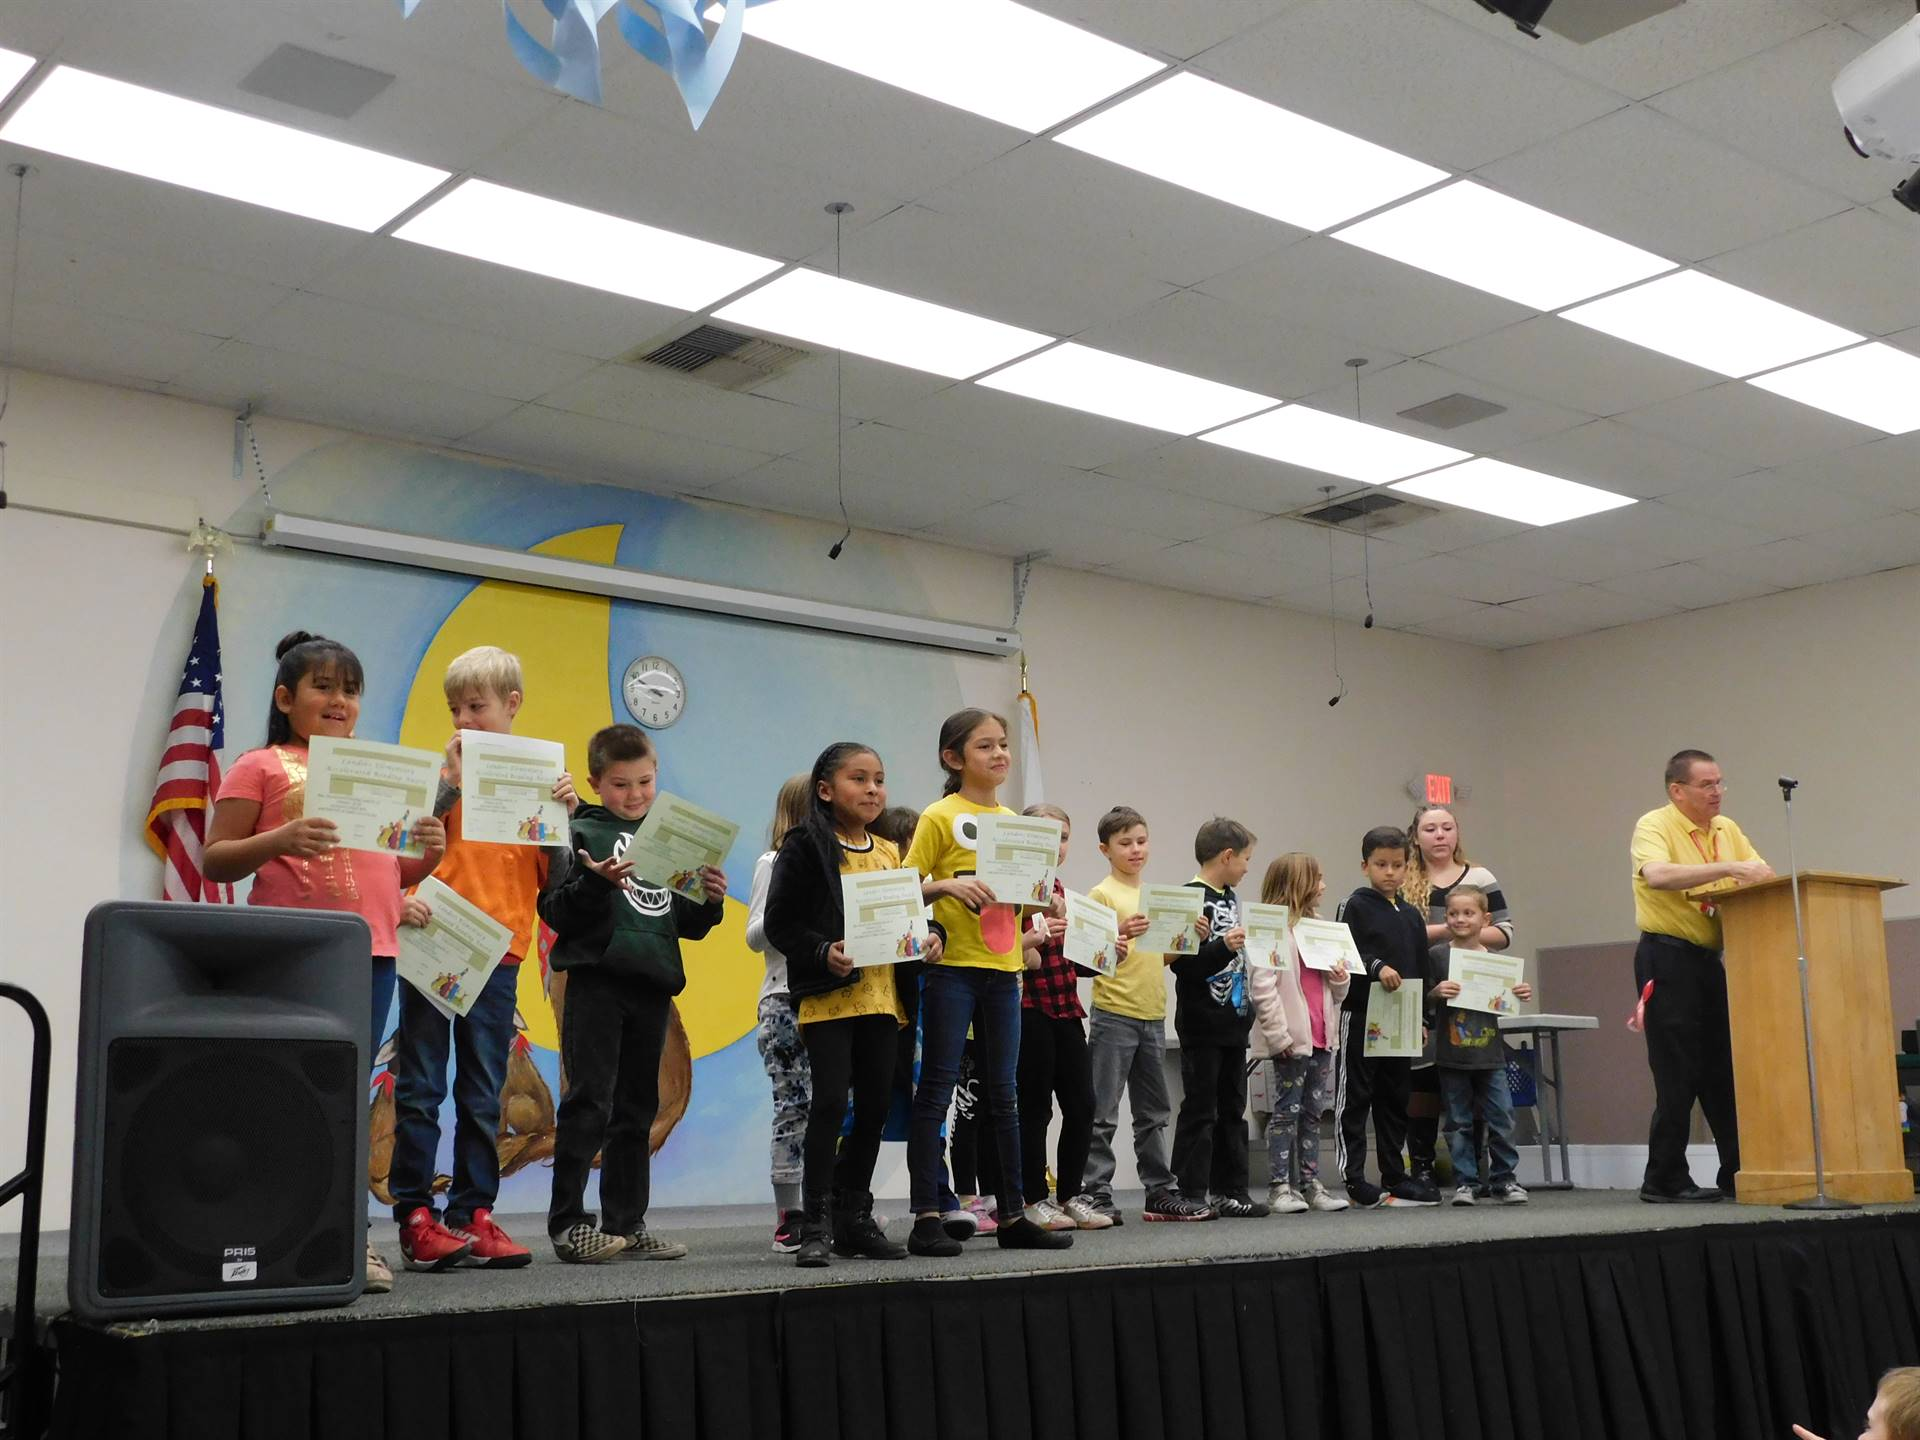 Student's from Mrs. Pfarr's 2nd grade class receive awards